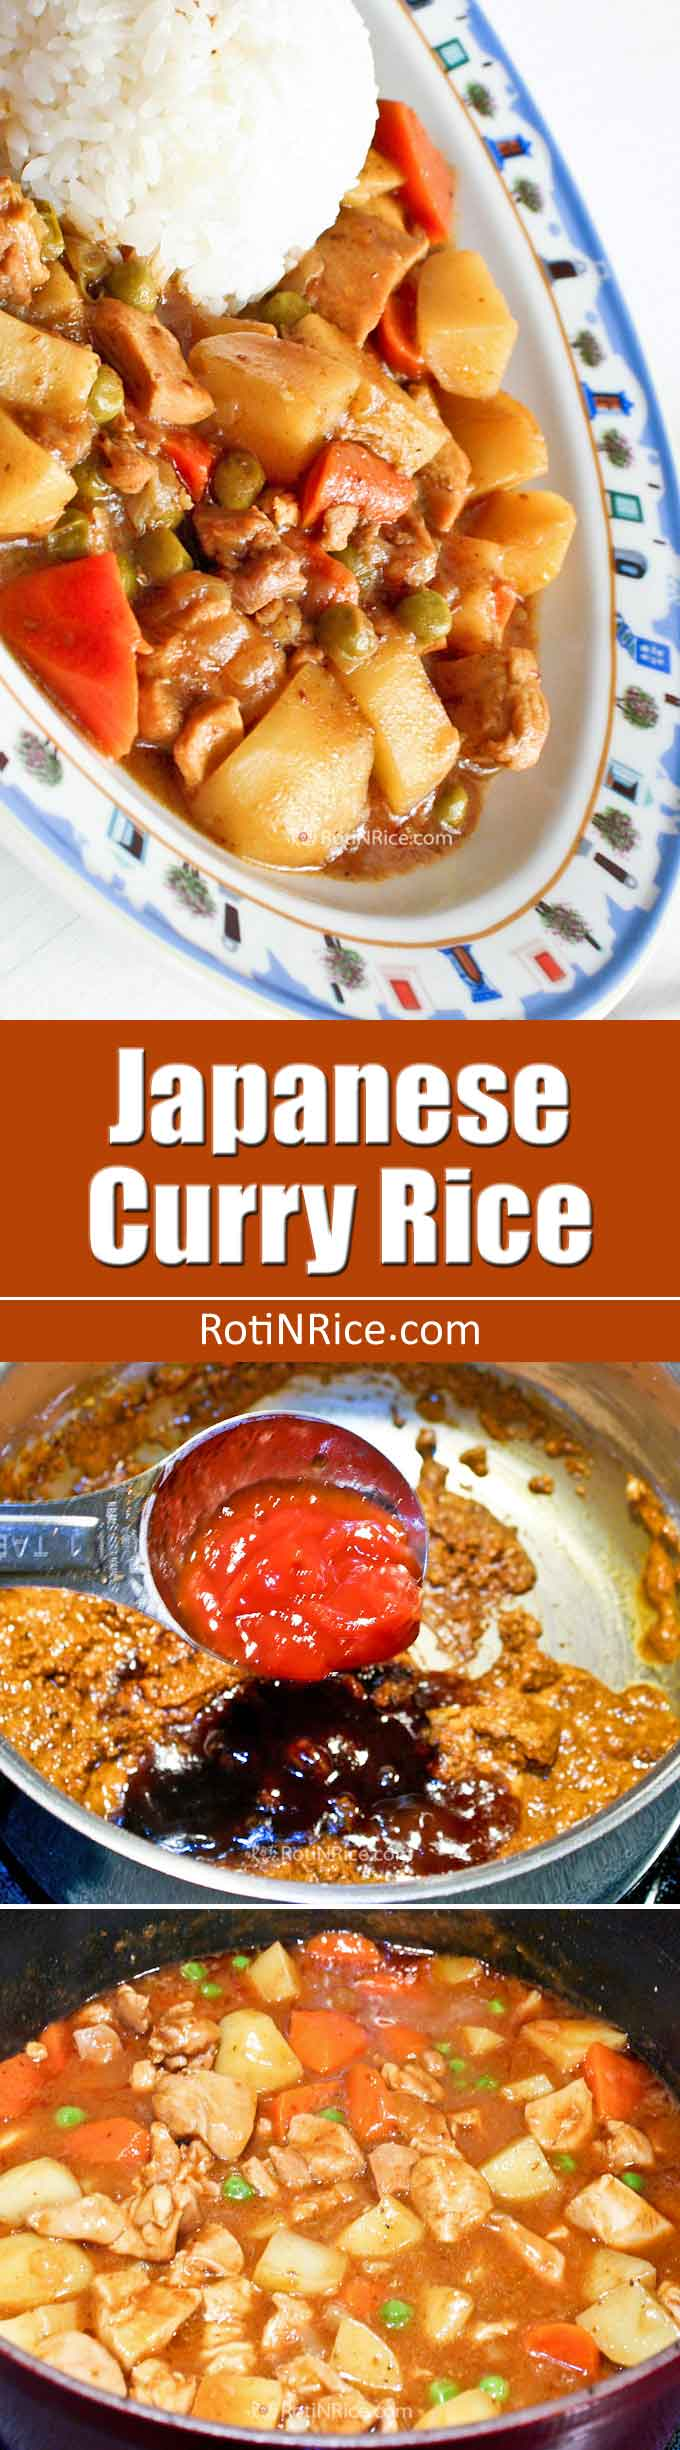 Mild and delicious Japanese Curry Rice made from scratch using curry powder, garam masala, tomato sauce, thick Worcestershire sauce, and rice flour. | RotiNRice.com